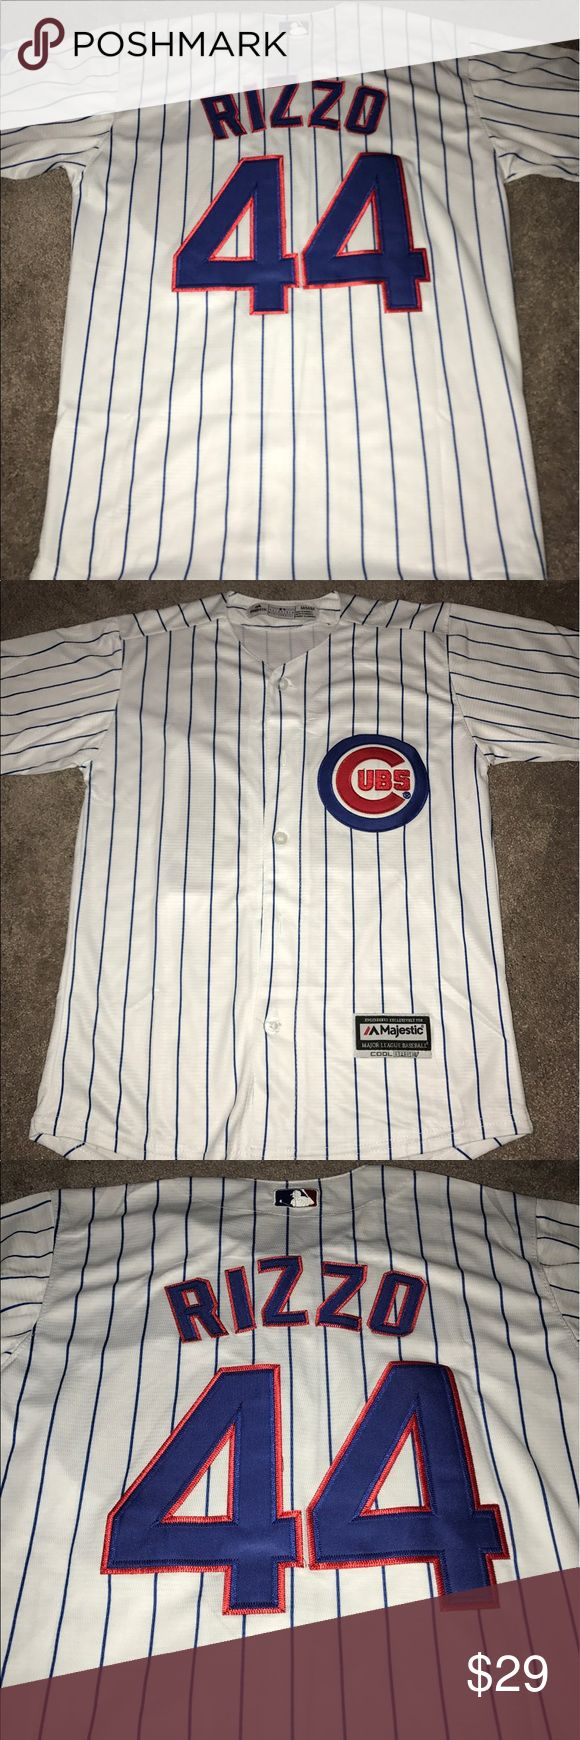 Kids Anthony Rizzo Chicago Cubs jersey (Medium) Youth Chicago Cubs Anthony Rizzo  Majestic Athletic home jersey. Brand new with tags, fully embroidered, size medium.Check my other listings for more Cubs merchandise, including jerseys for Men, Women and Kids! Majestic Shirts & Tops Button Down Shirts